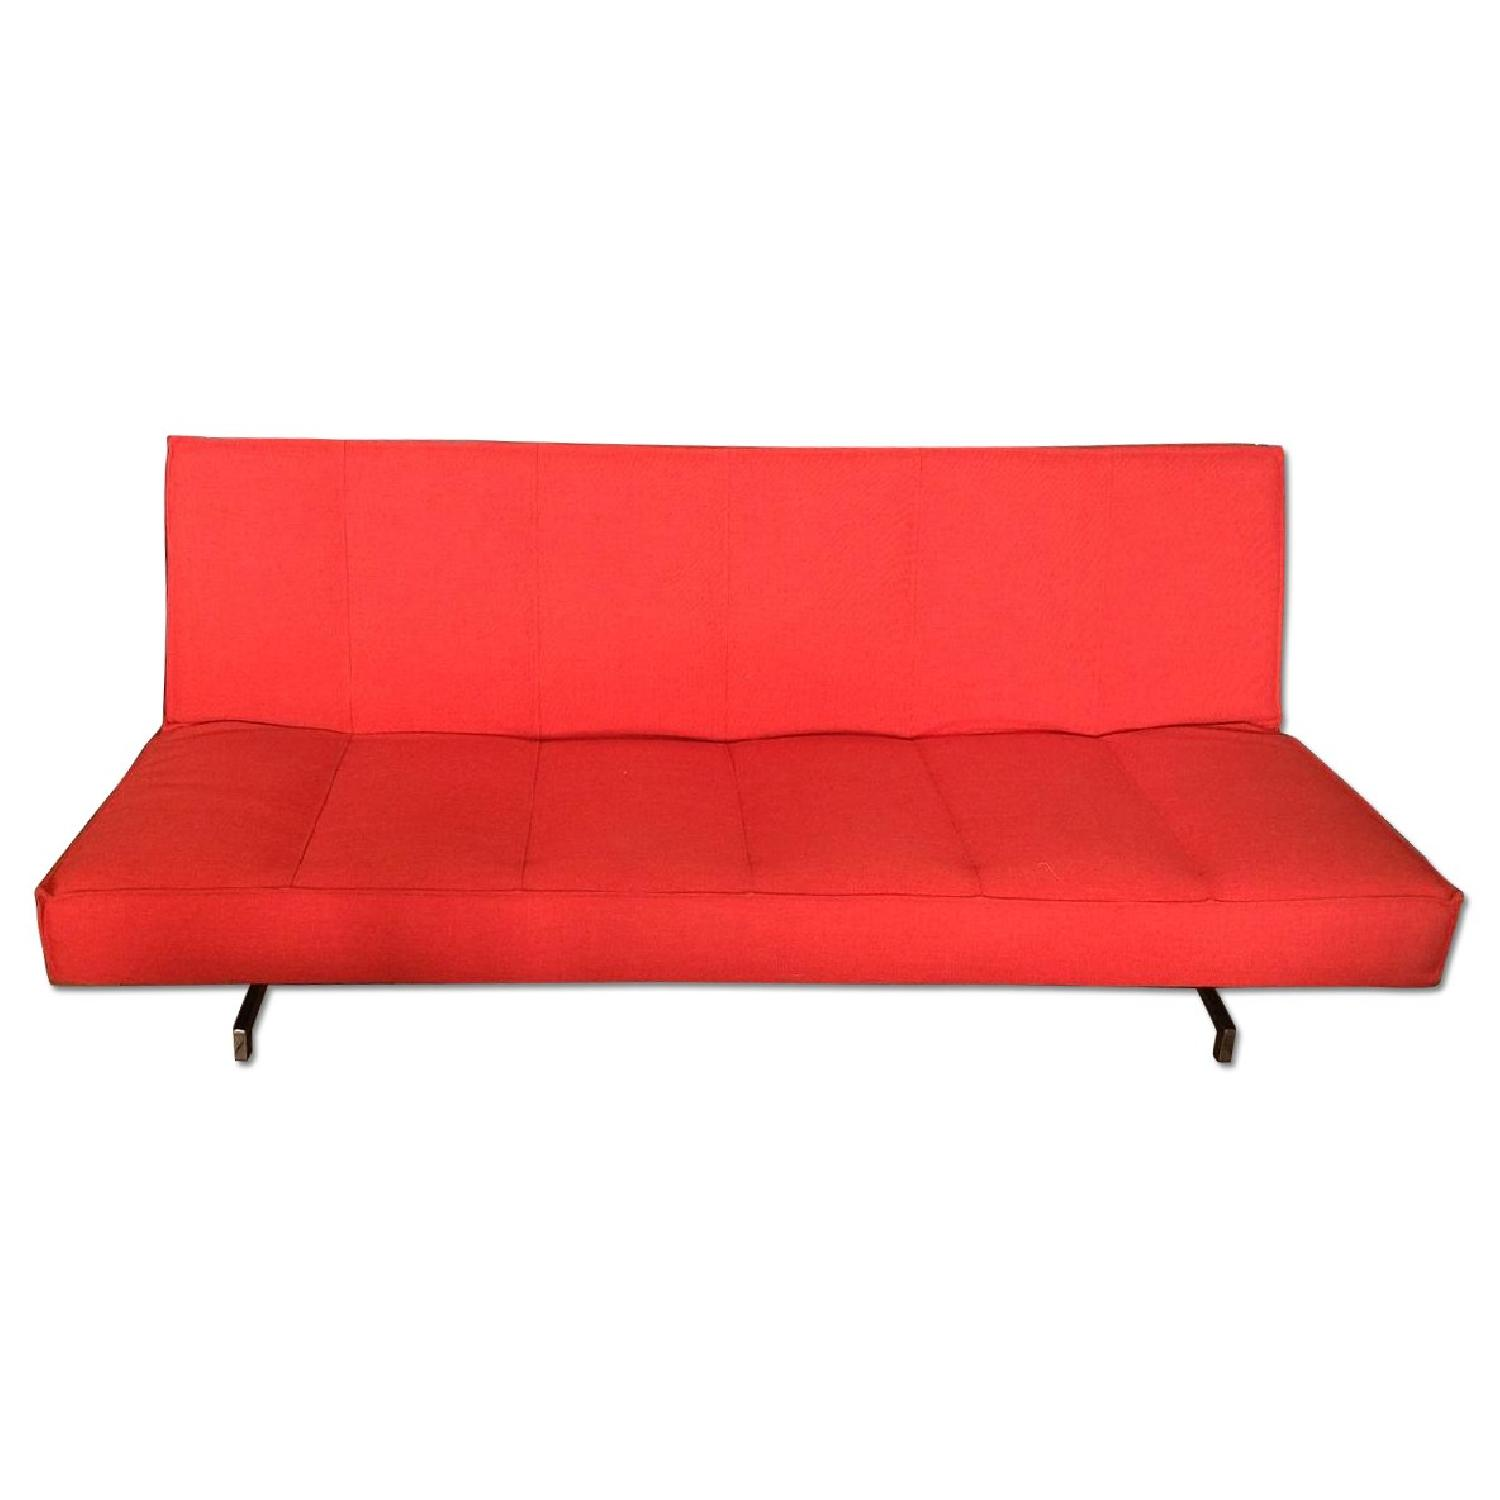 Red Fold Down Sofa Bed - image-0